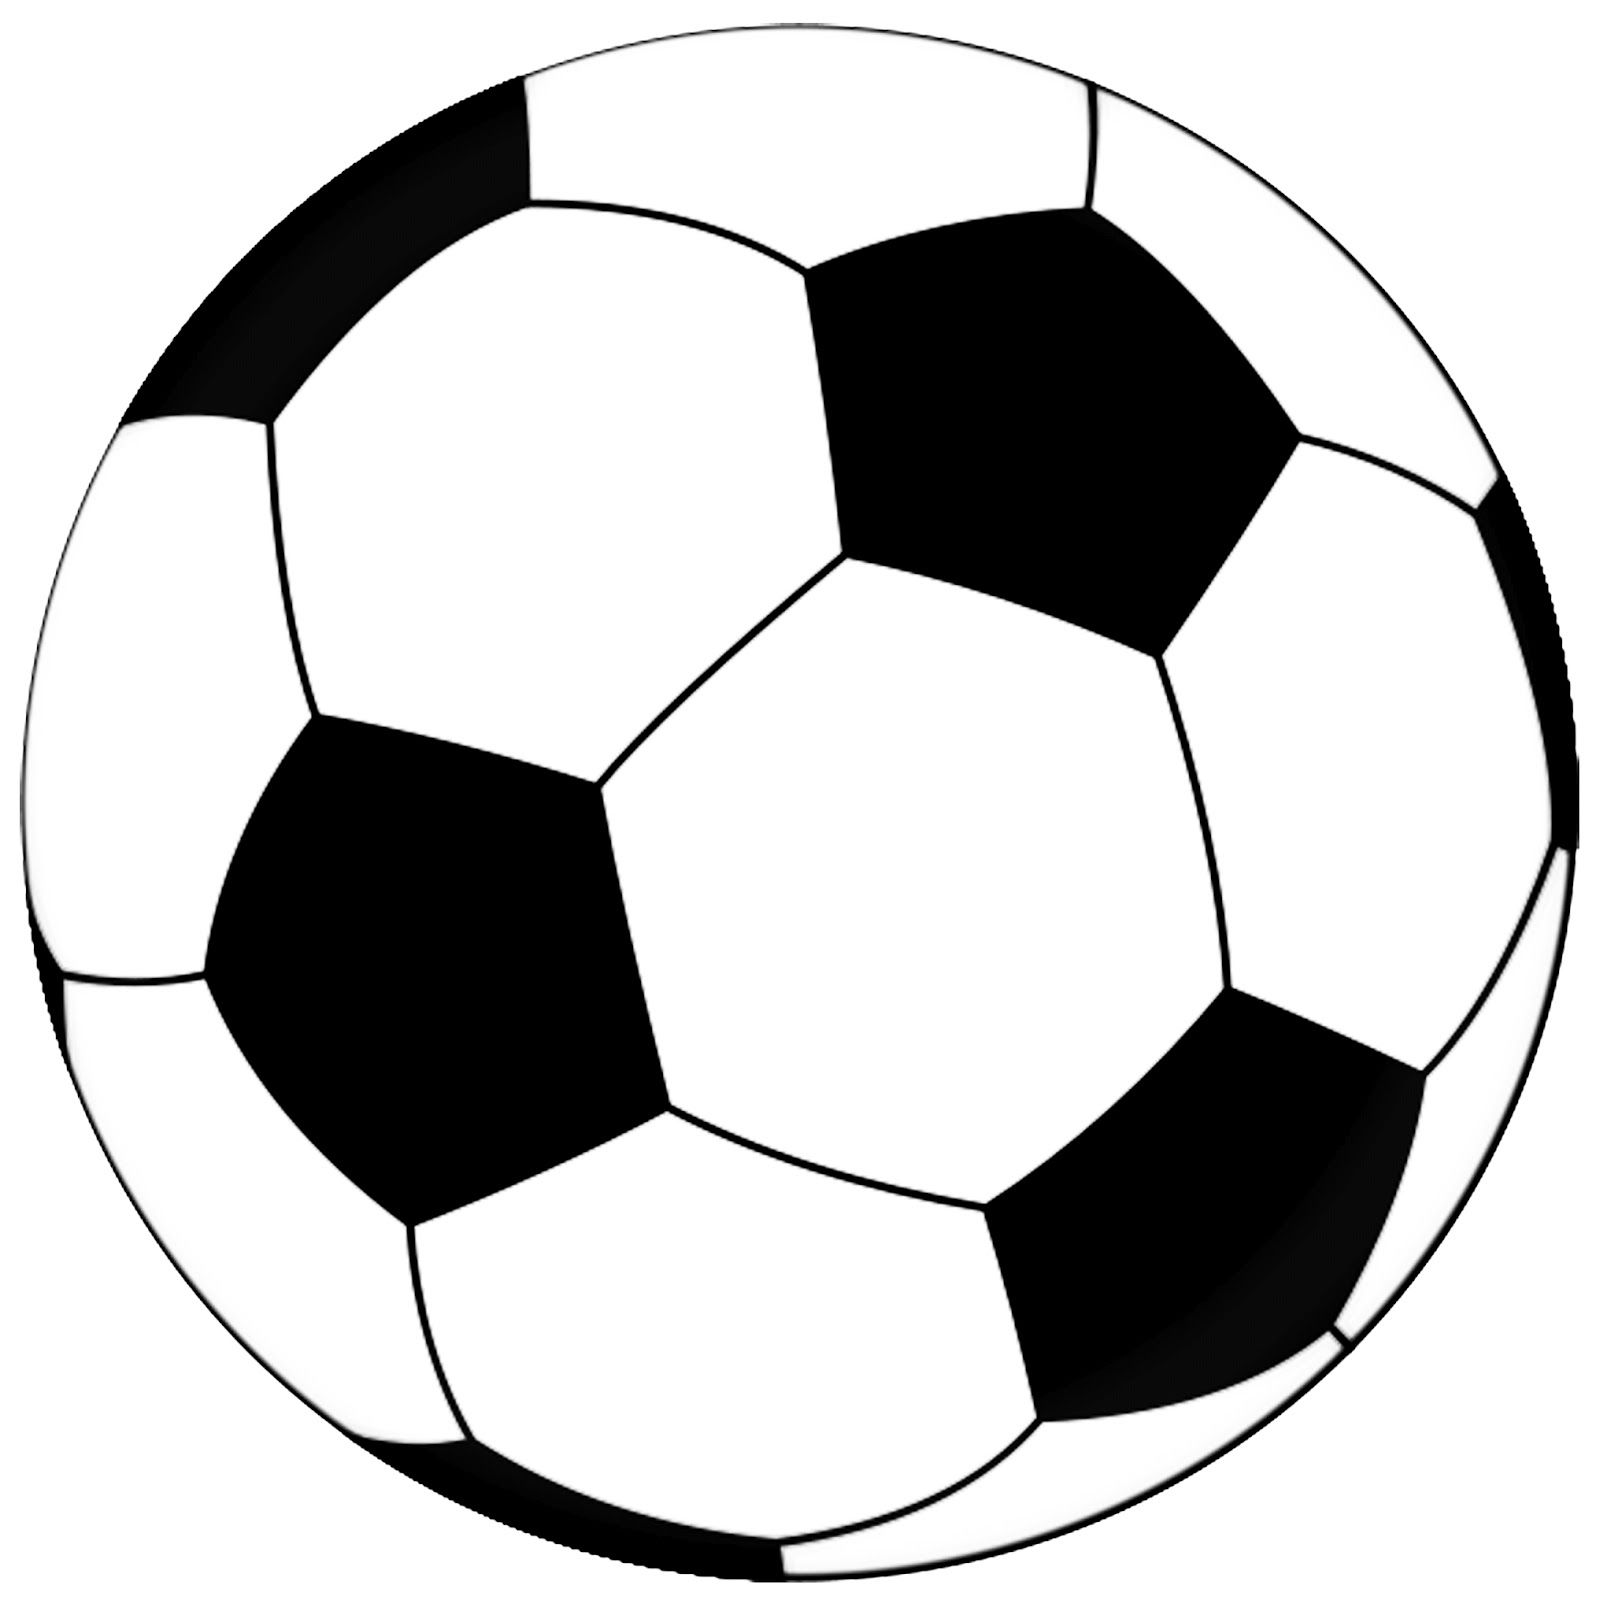 Best Photos of Soccer Ball Template.